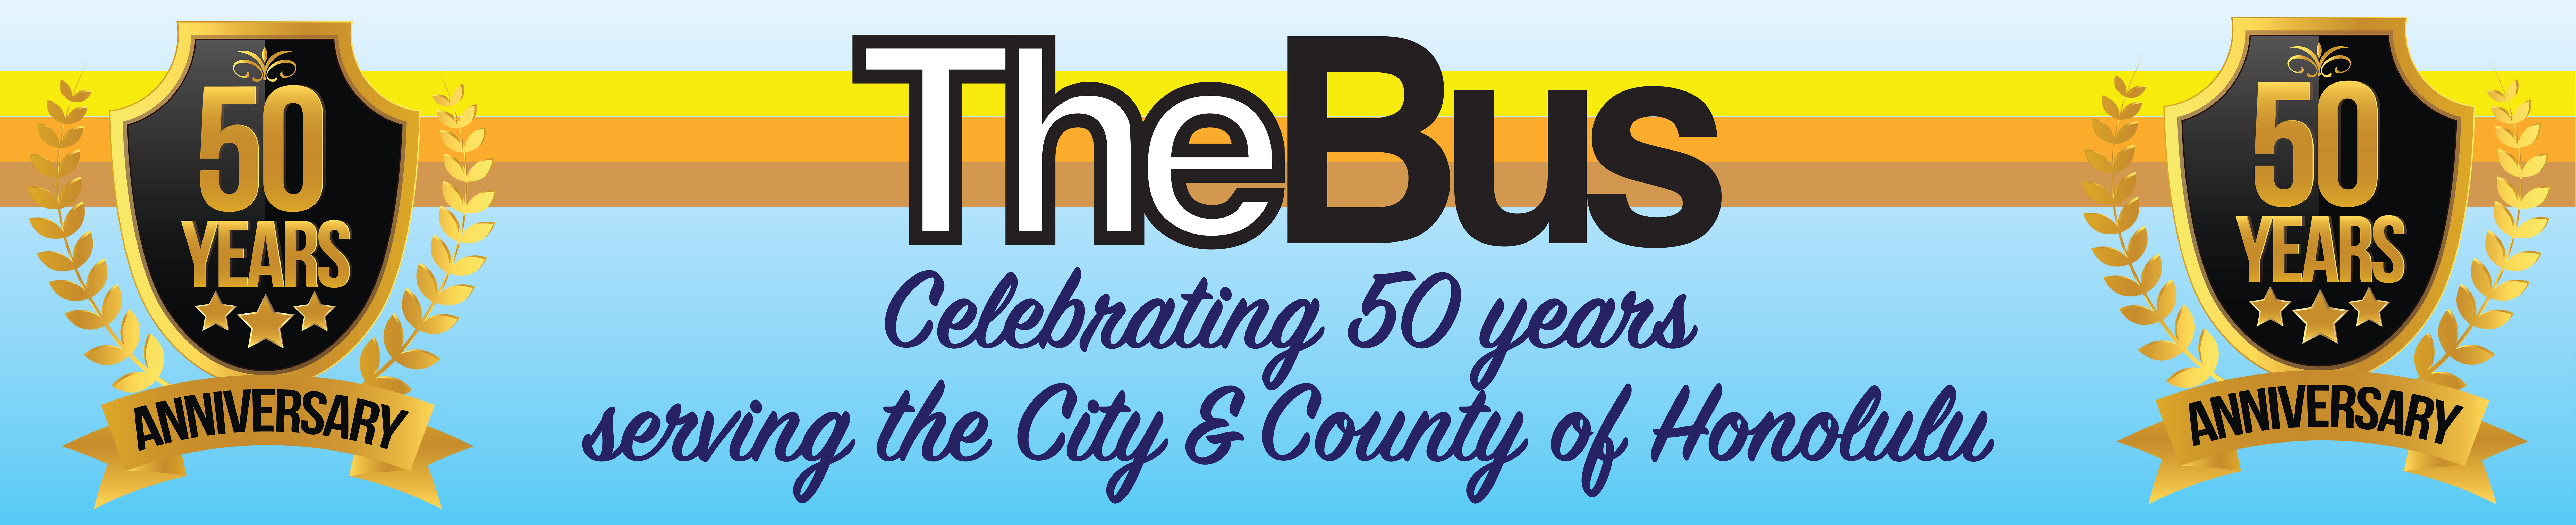 TheBus - Celebrating 50 years serving the City & County of Honolulu Logo